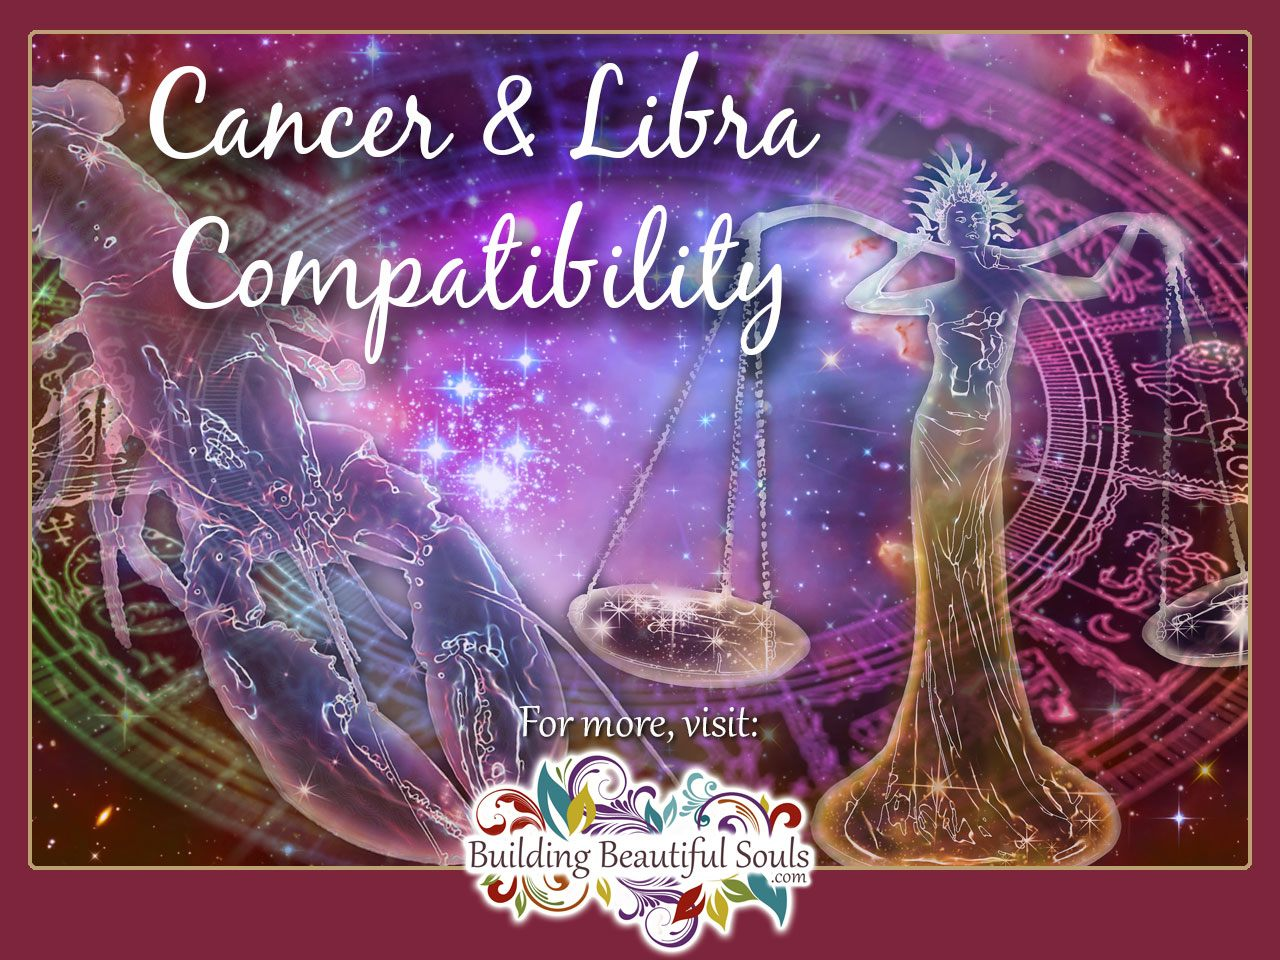 Cancer and Libra 1280x960